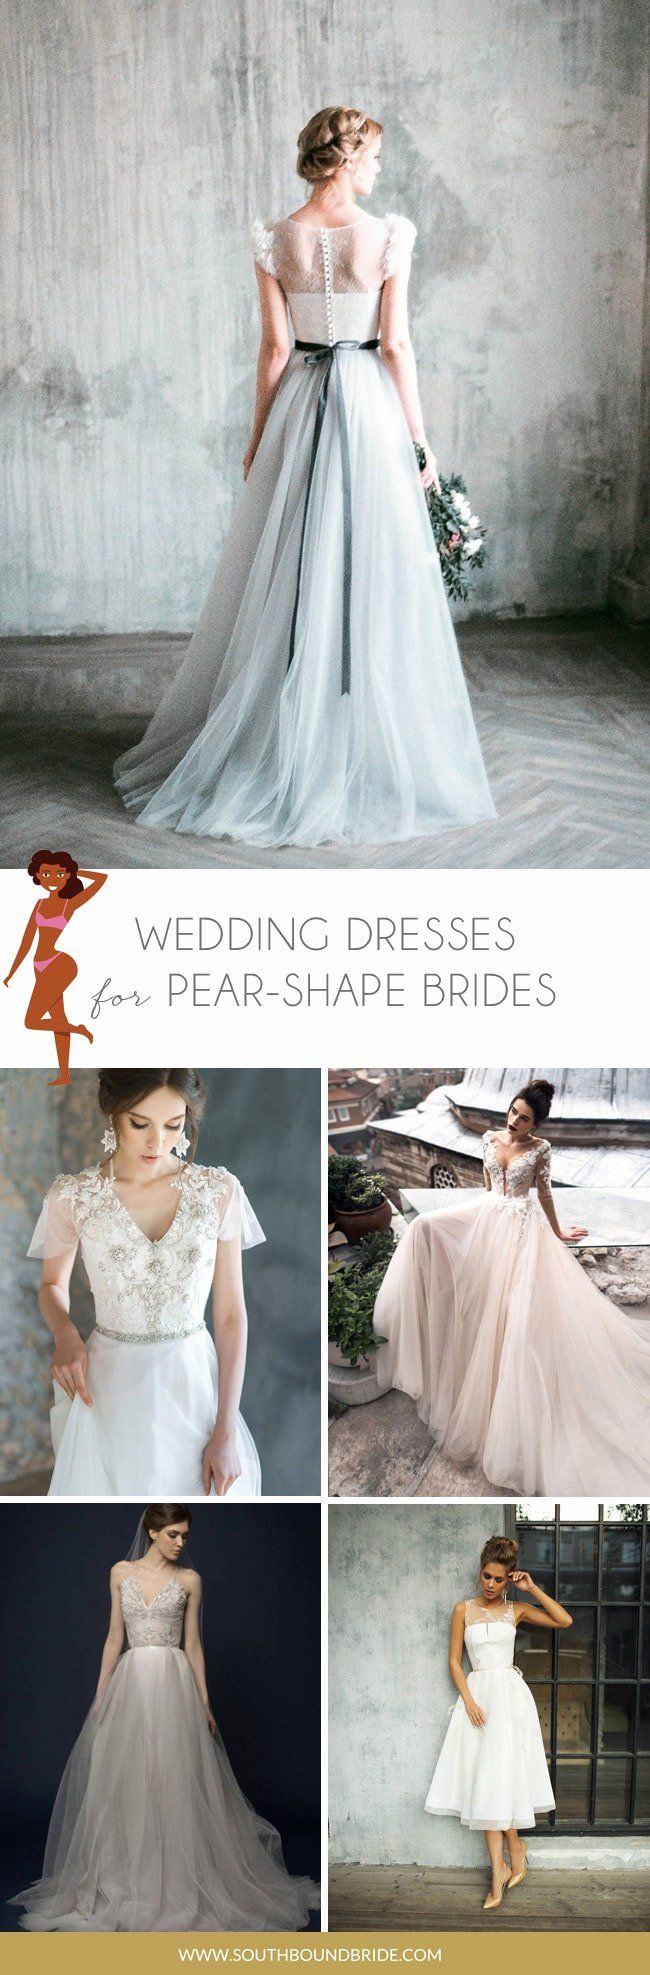 Wedding Dress For Curvy Petite Figure Unique Best Style Wedding Dress For Pear Shaped Raveitsafe In 2020 Pear Shaped Dresses Wedding Dresses Bride